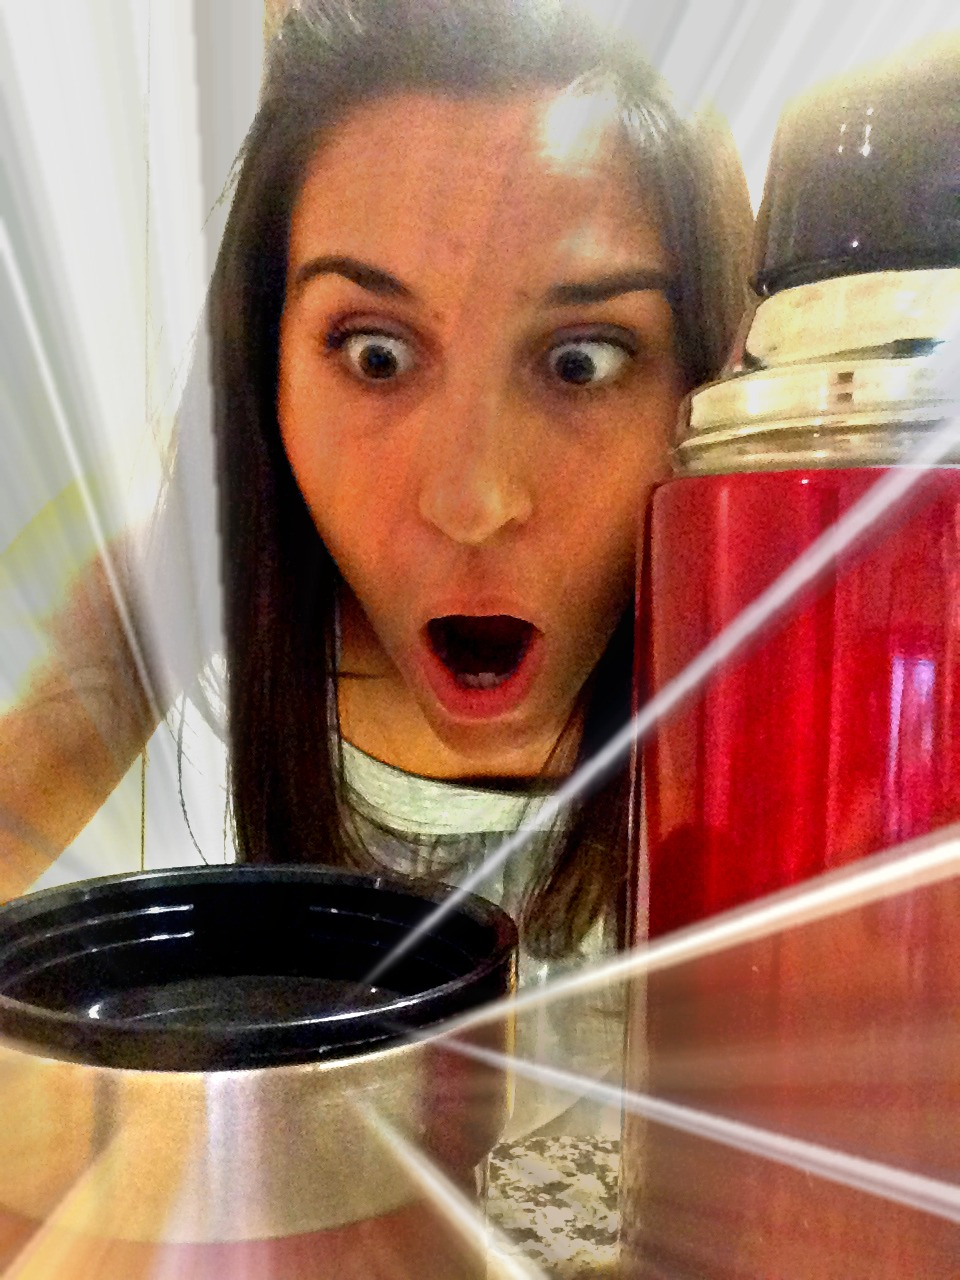 Excited Danielli with Thermos